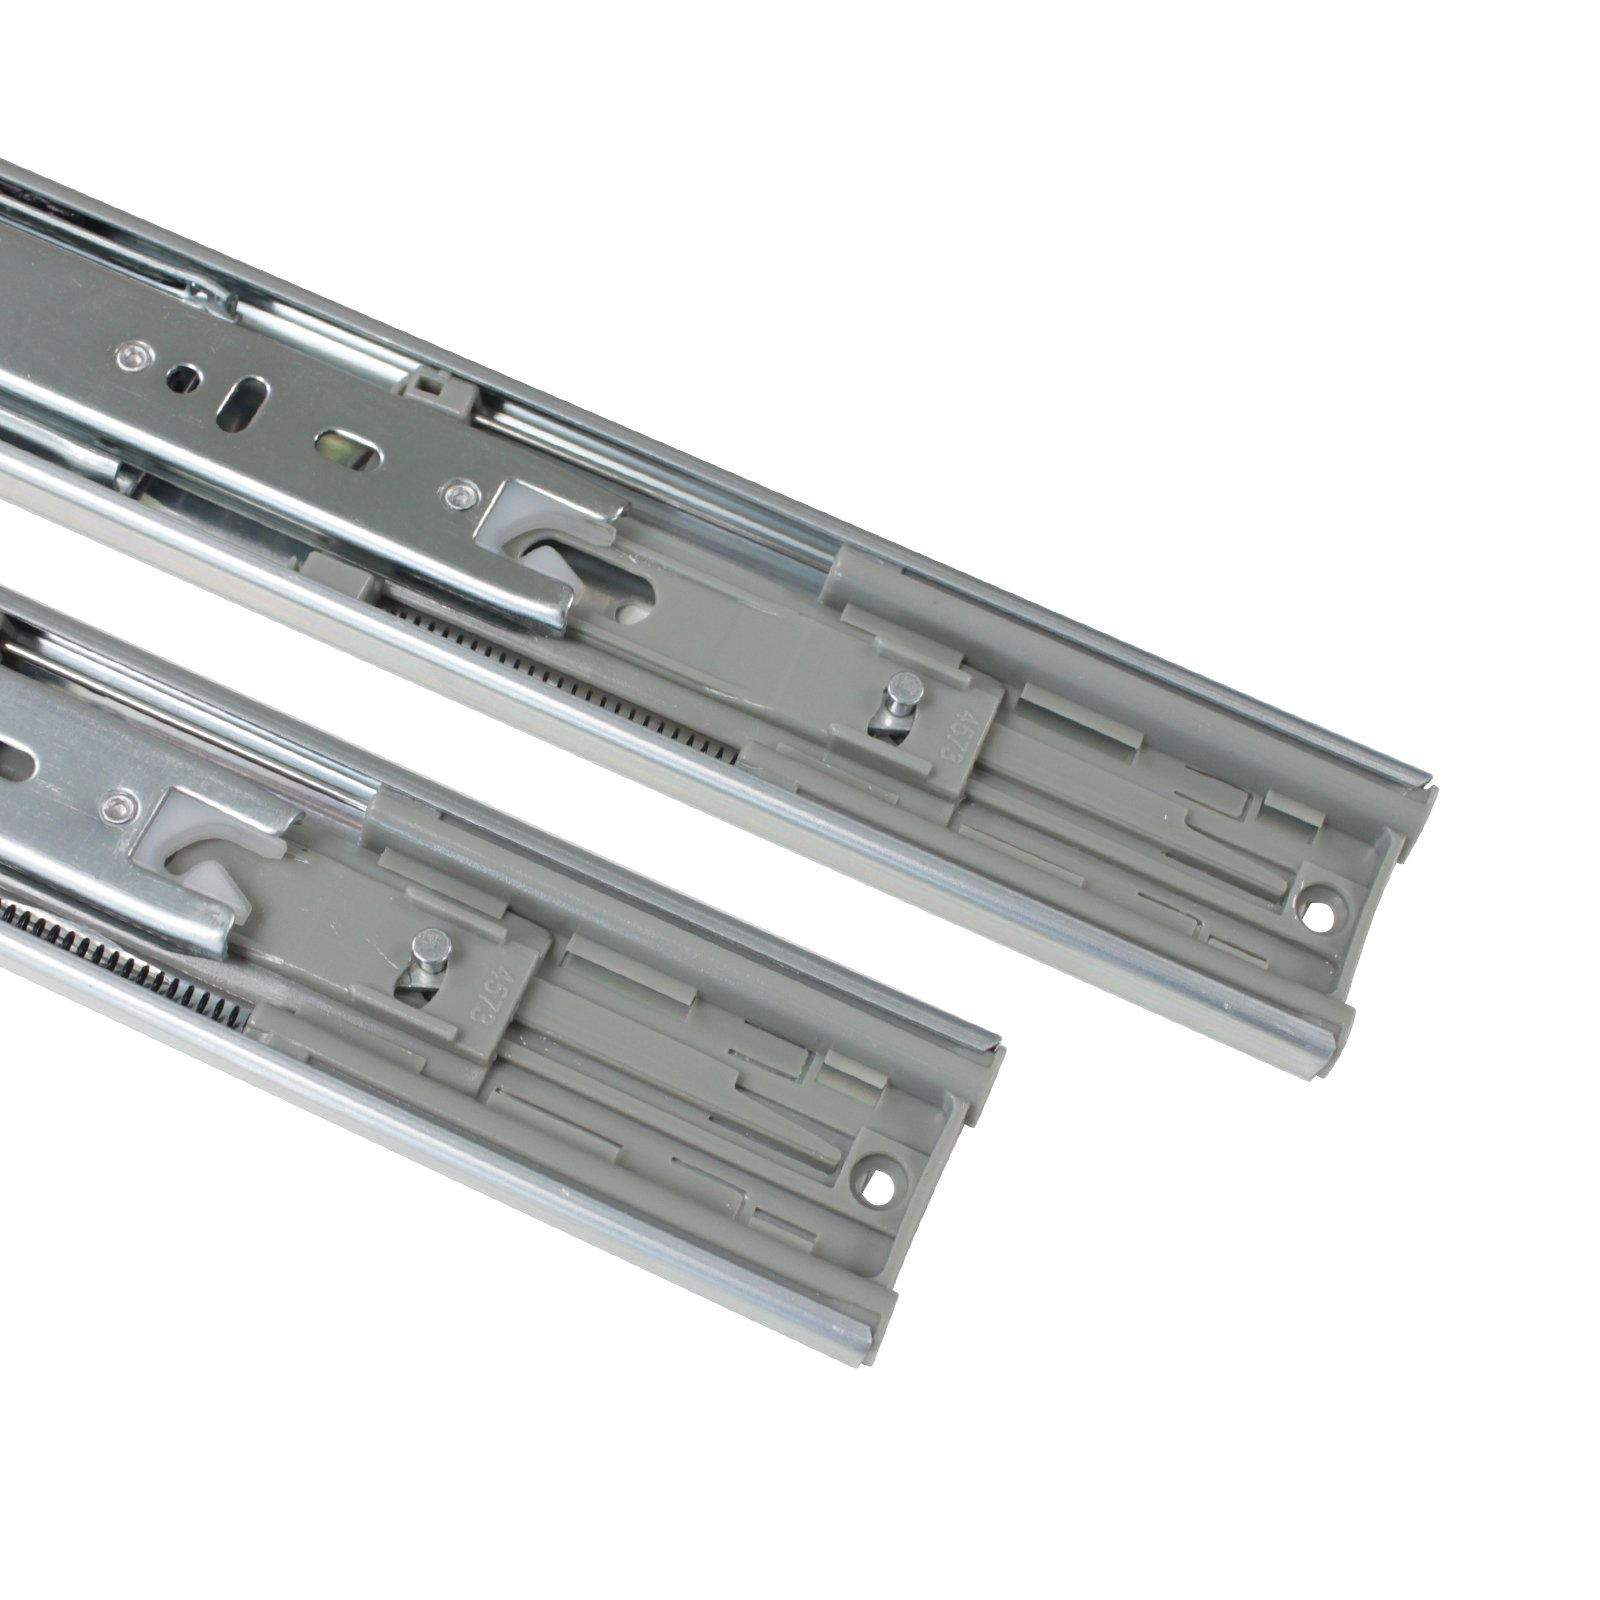 Gobrico Rear/Under Mounting Drawer Slides With Brackets Soft Closing Ball Bearing 100 Lb Glides Runners Full Extension 22in 5Pairs by Gobrico (Image #4)